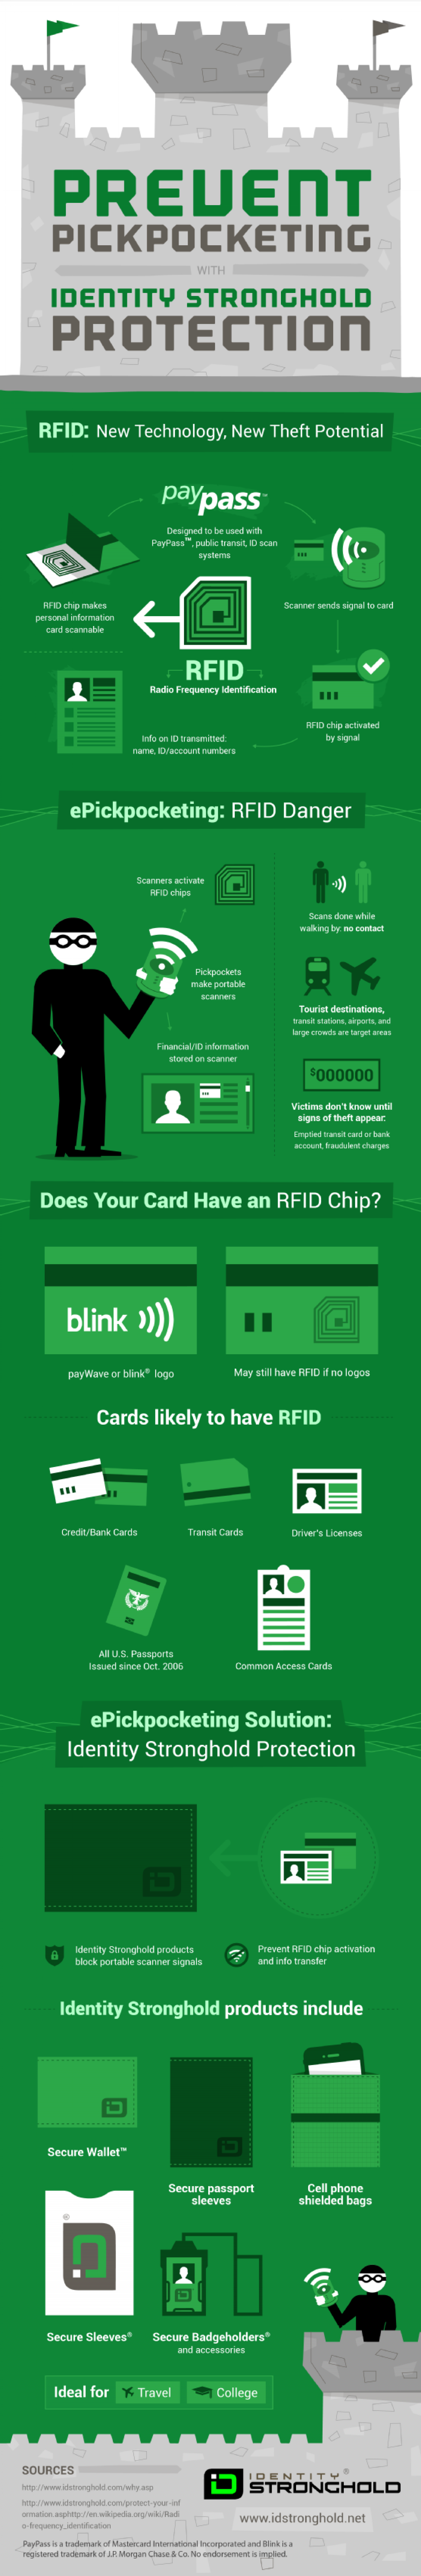 Prevent Pickpocketing with Identity Stronghold Protection Infographic